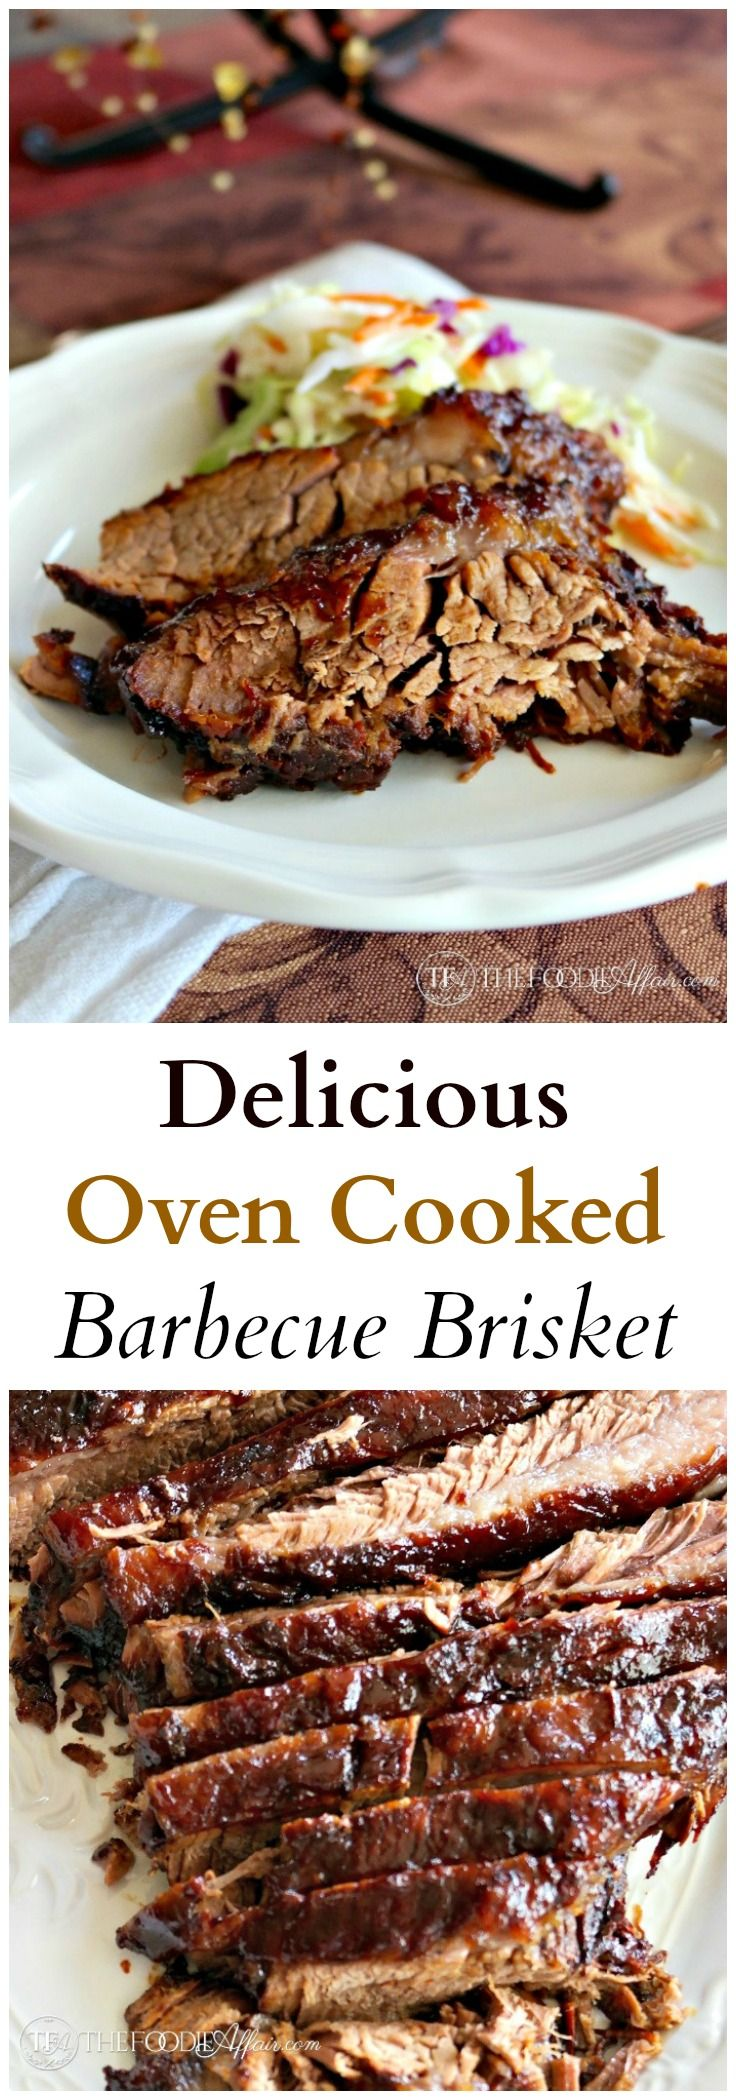 Delicious Oven Cooked Barbecue Brisket marinated overnight in liquid smoke and then slow cooked to perfection - The Foodie Affair/ @thefoodieaffair